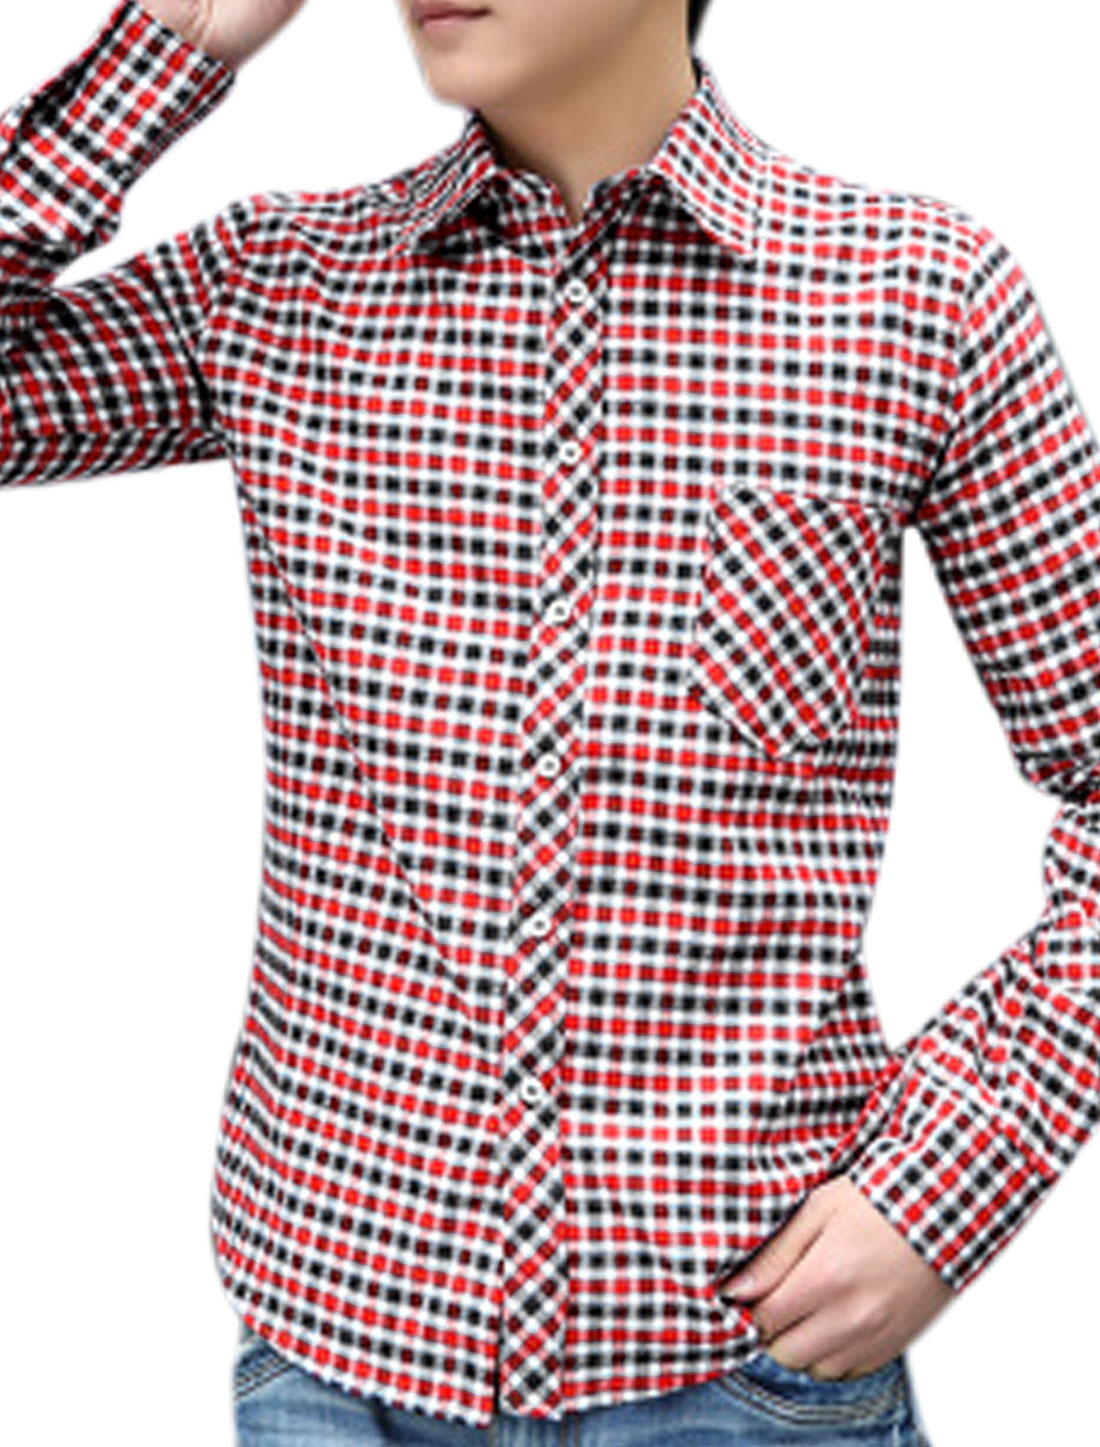 Men Plaids Point Collar Button Down Leisure Red White Shirts M